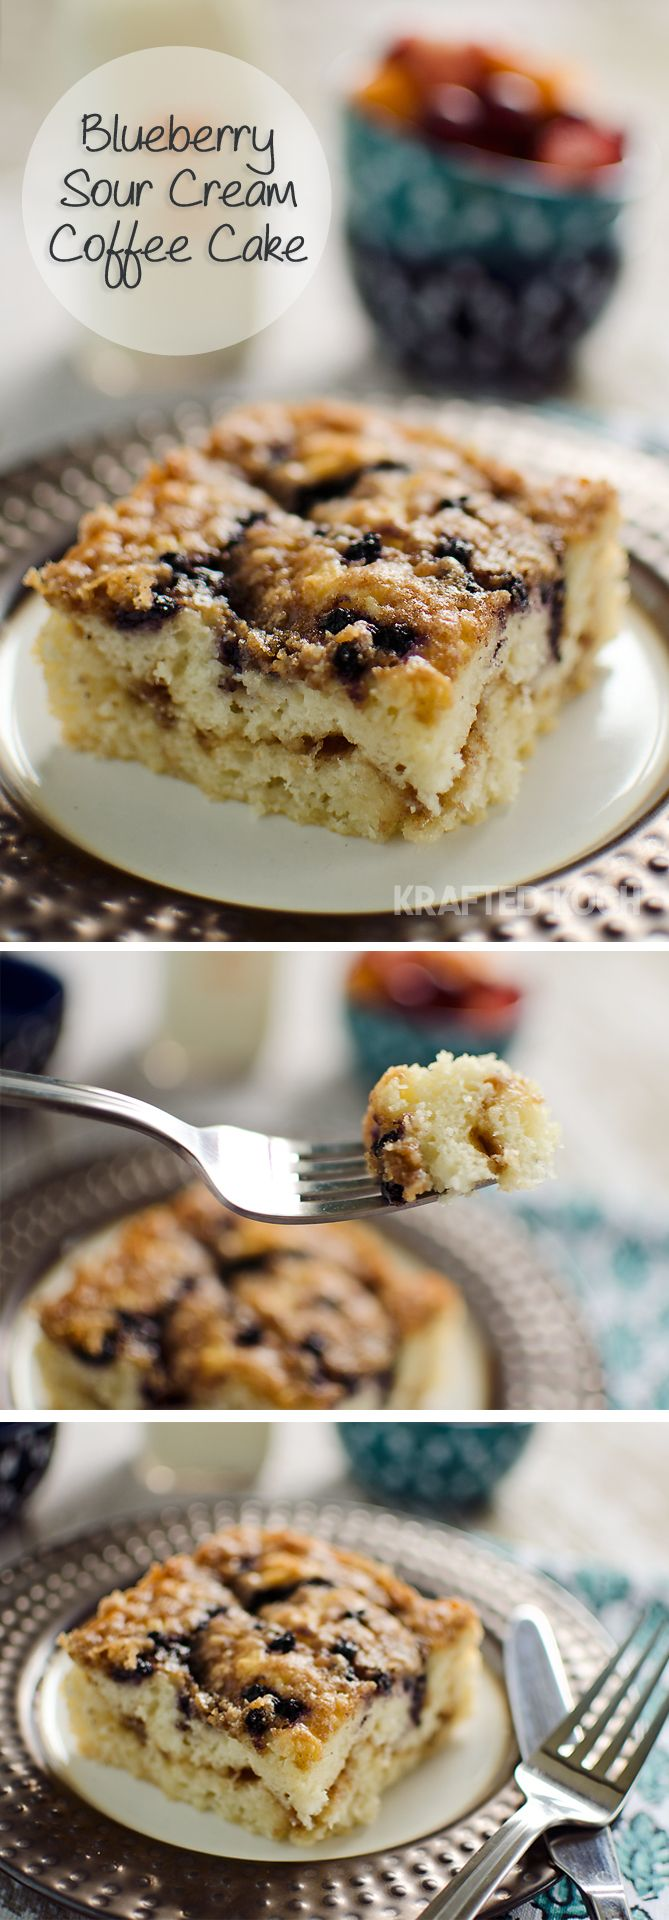 Sour cream coffee cake the frugal chef - 353 Best Breakfast Muffins Breads Scones Coffee Cake Images On Pinterest